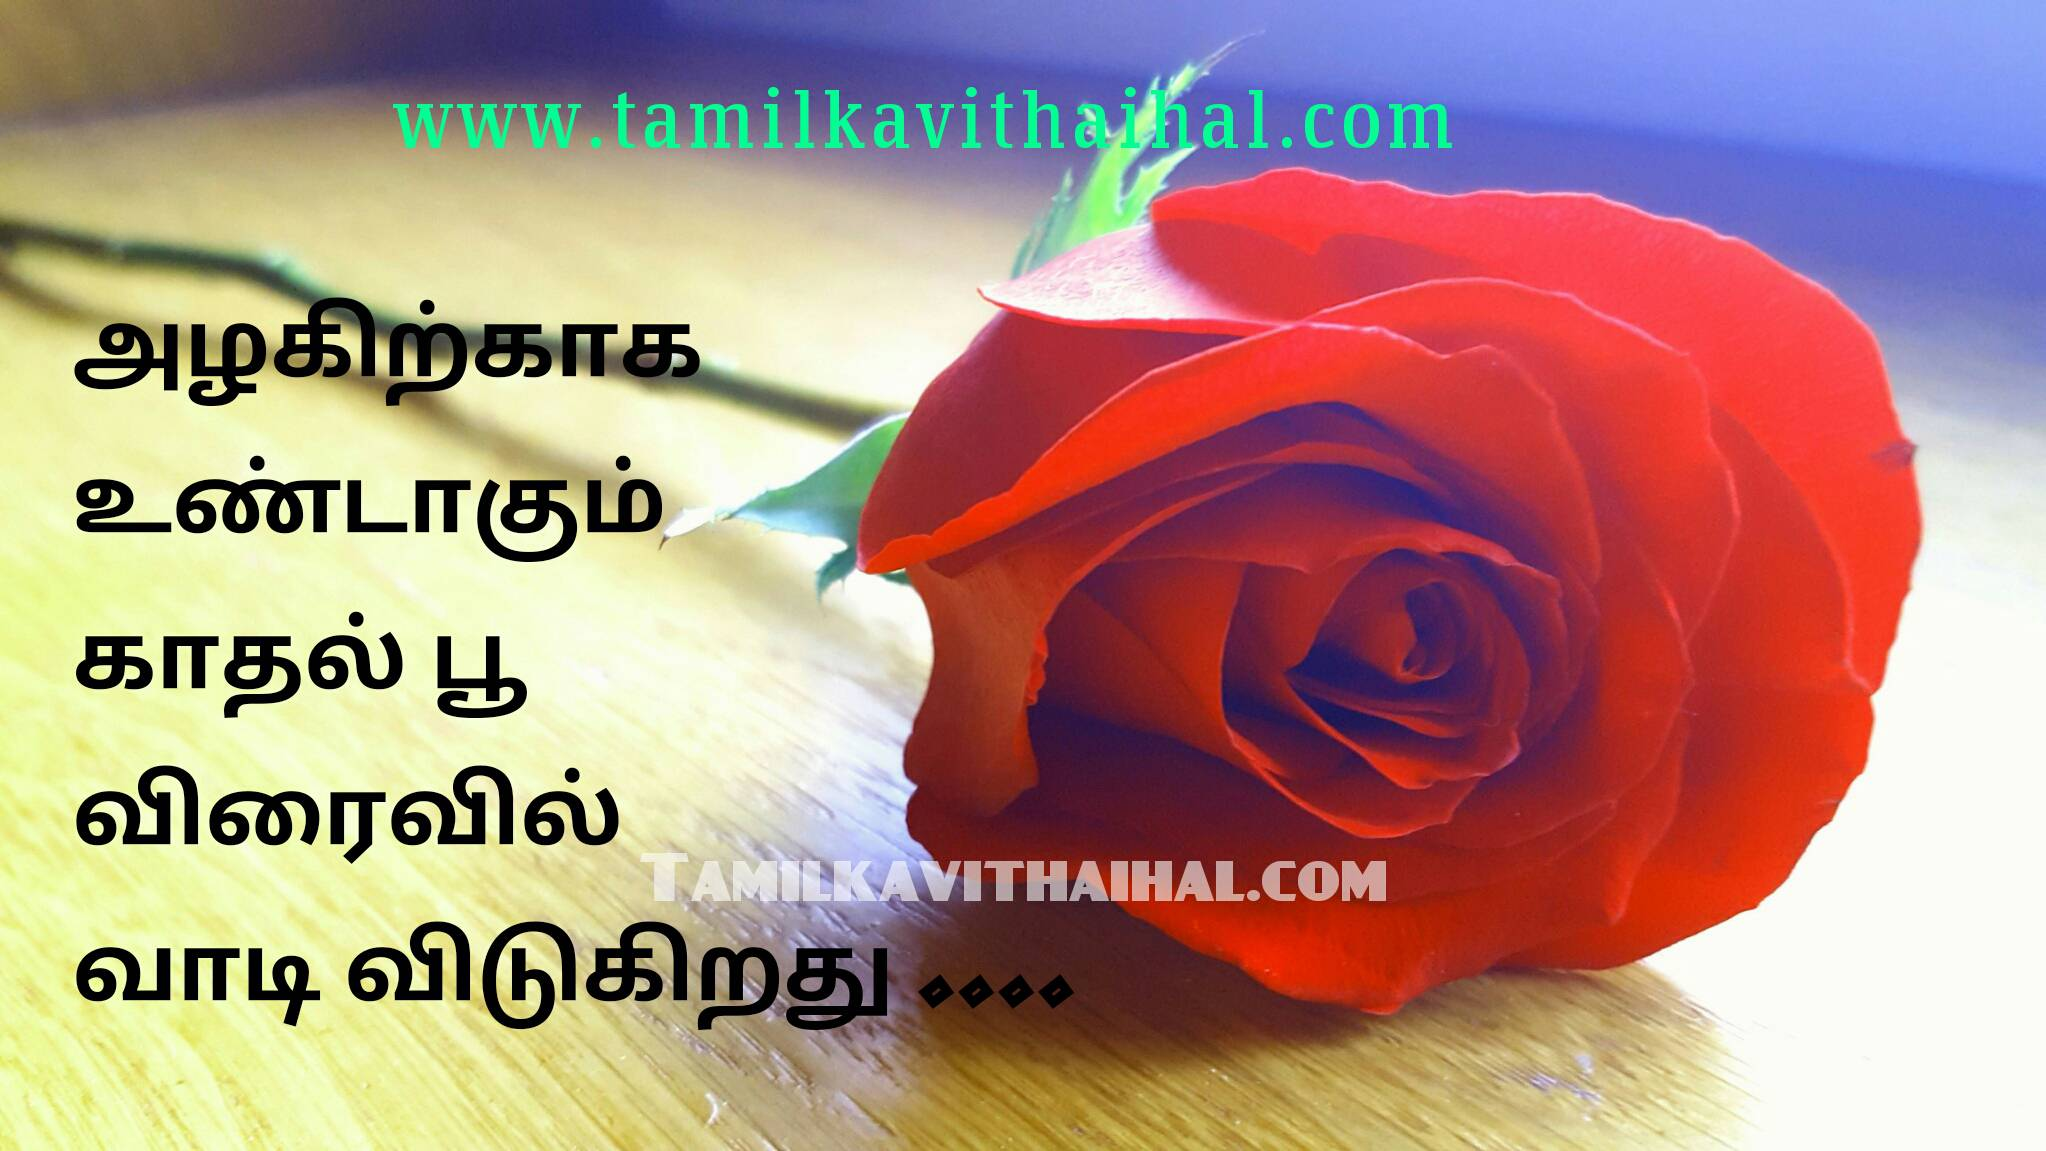 Best true love quotes in tamil beauty kadhal flower strong my life kavithai thathuvam positive hd wallpapper